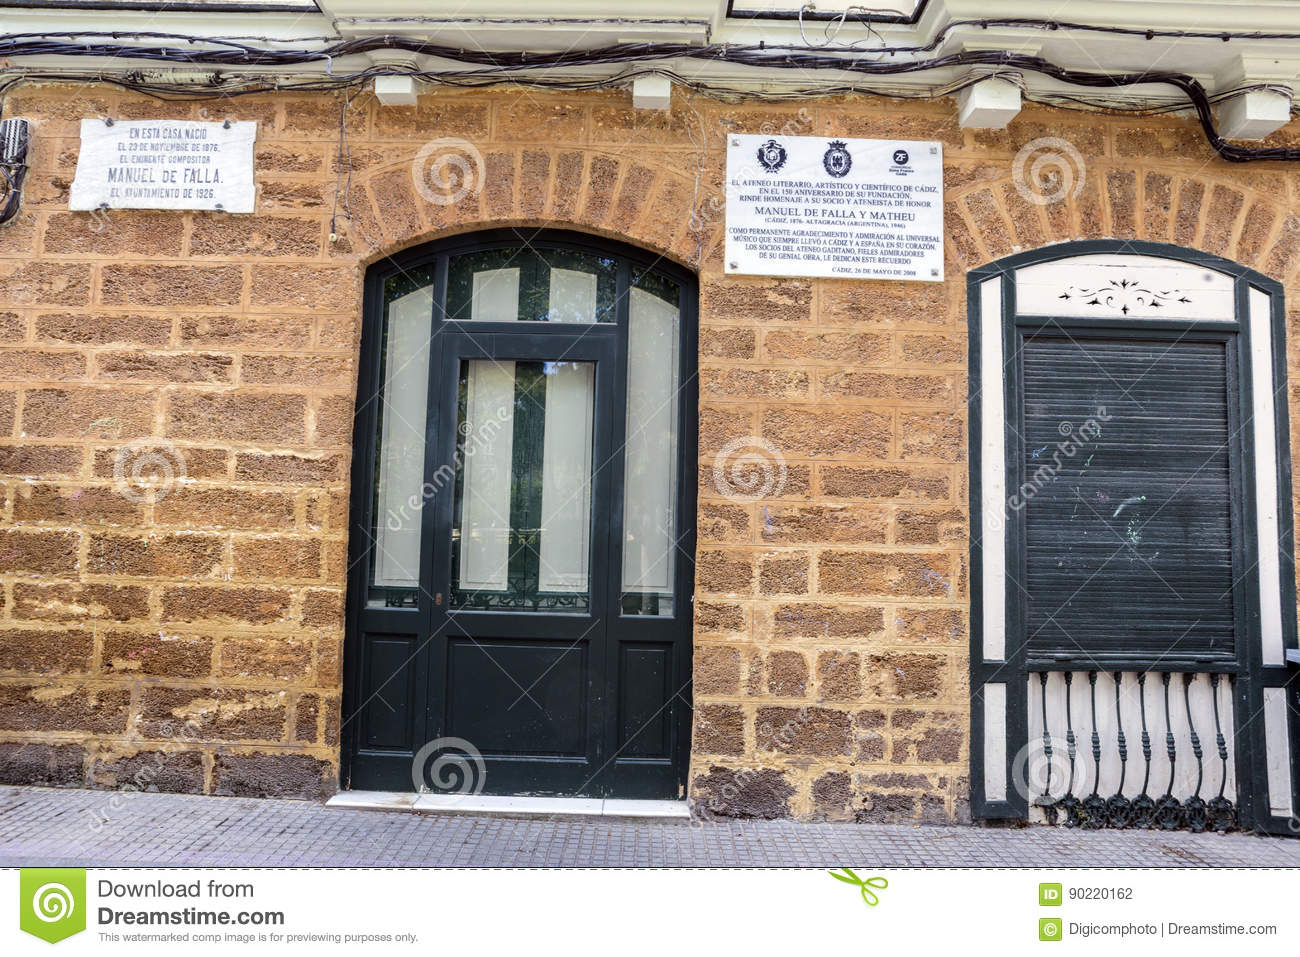 House where born the Spanish composer Manuel de Falla on 23 November 1876, registration indicates in marble indicates